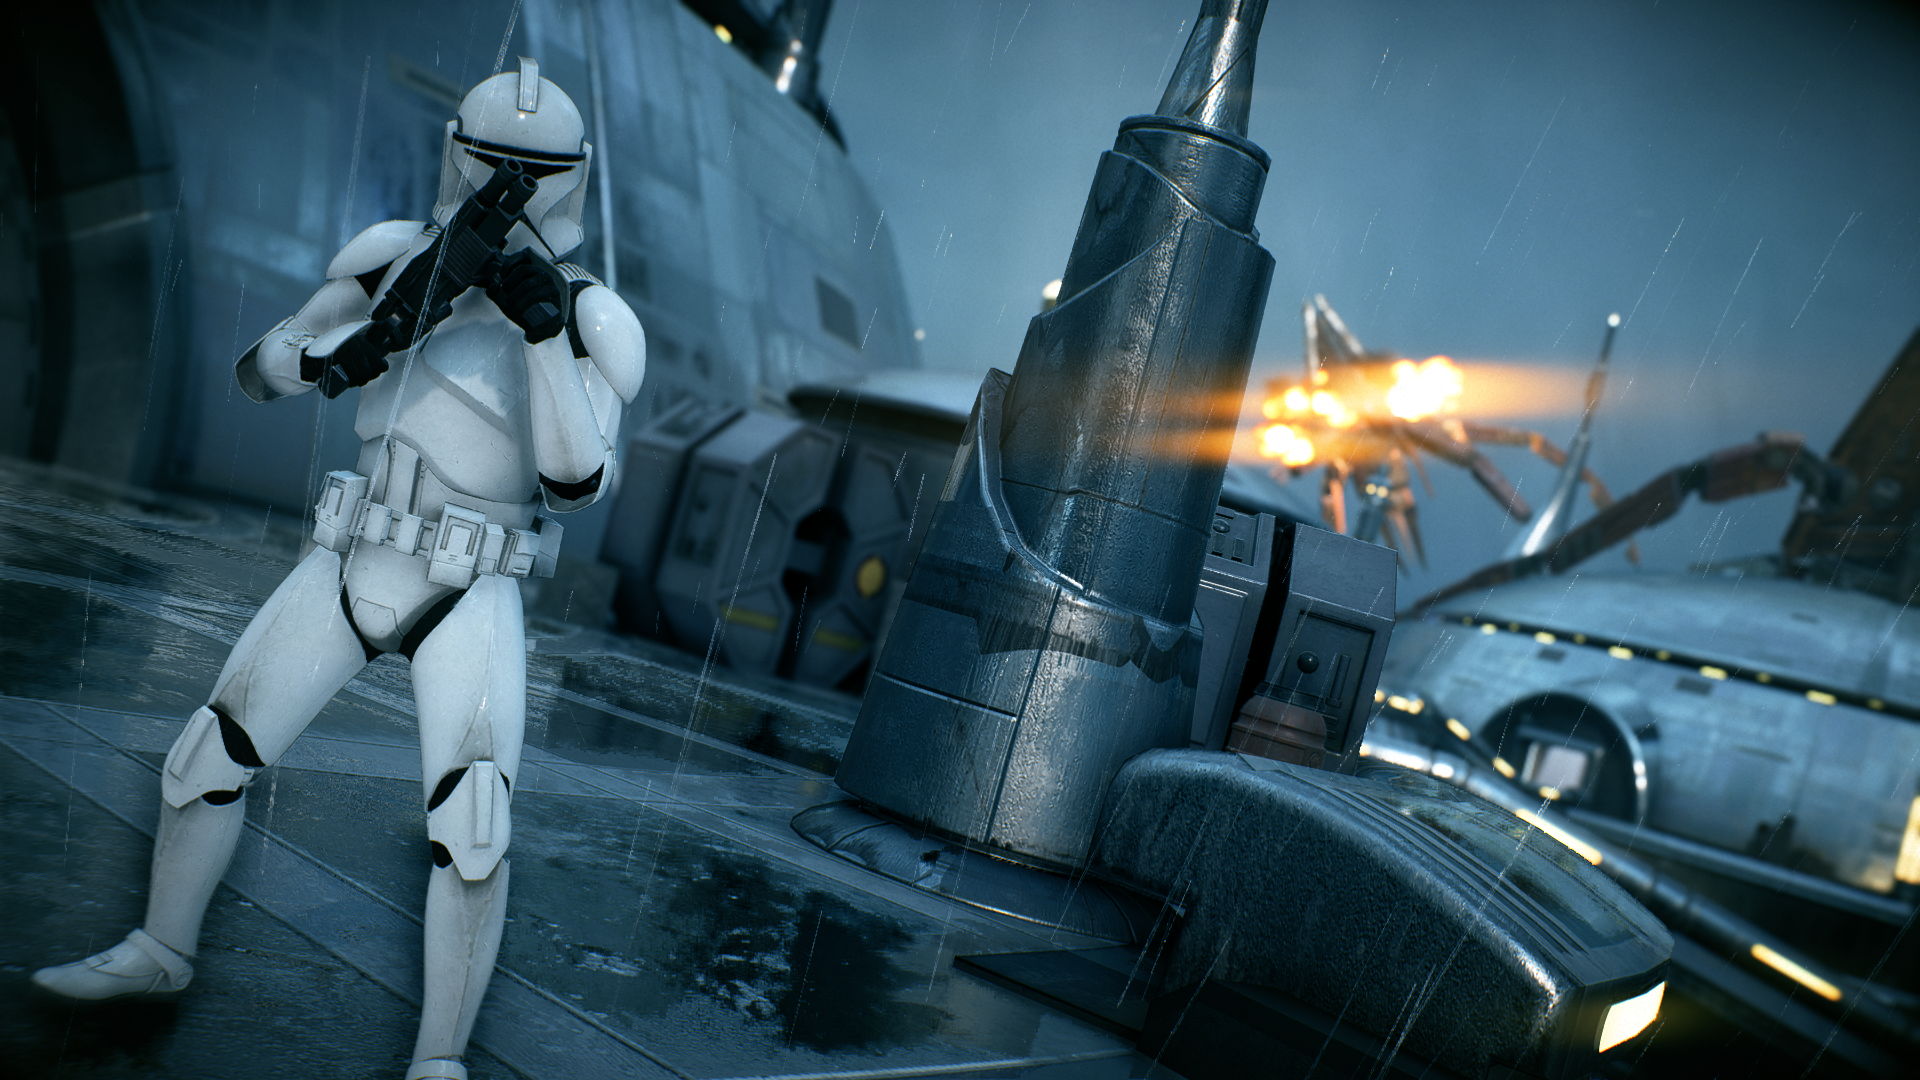 Bakgrundsbilder Id Star Wars Battlefront 2 Clone 1706554 Hd Wallpaper Backgrounds Download